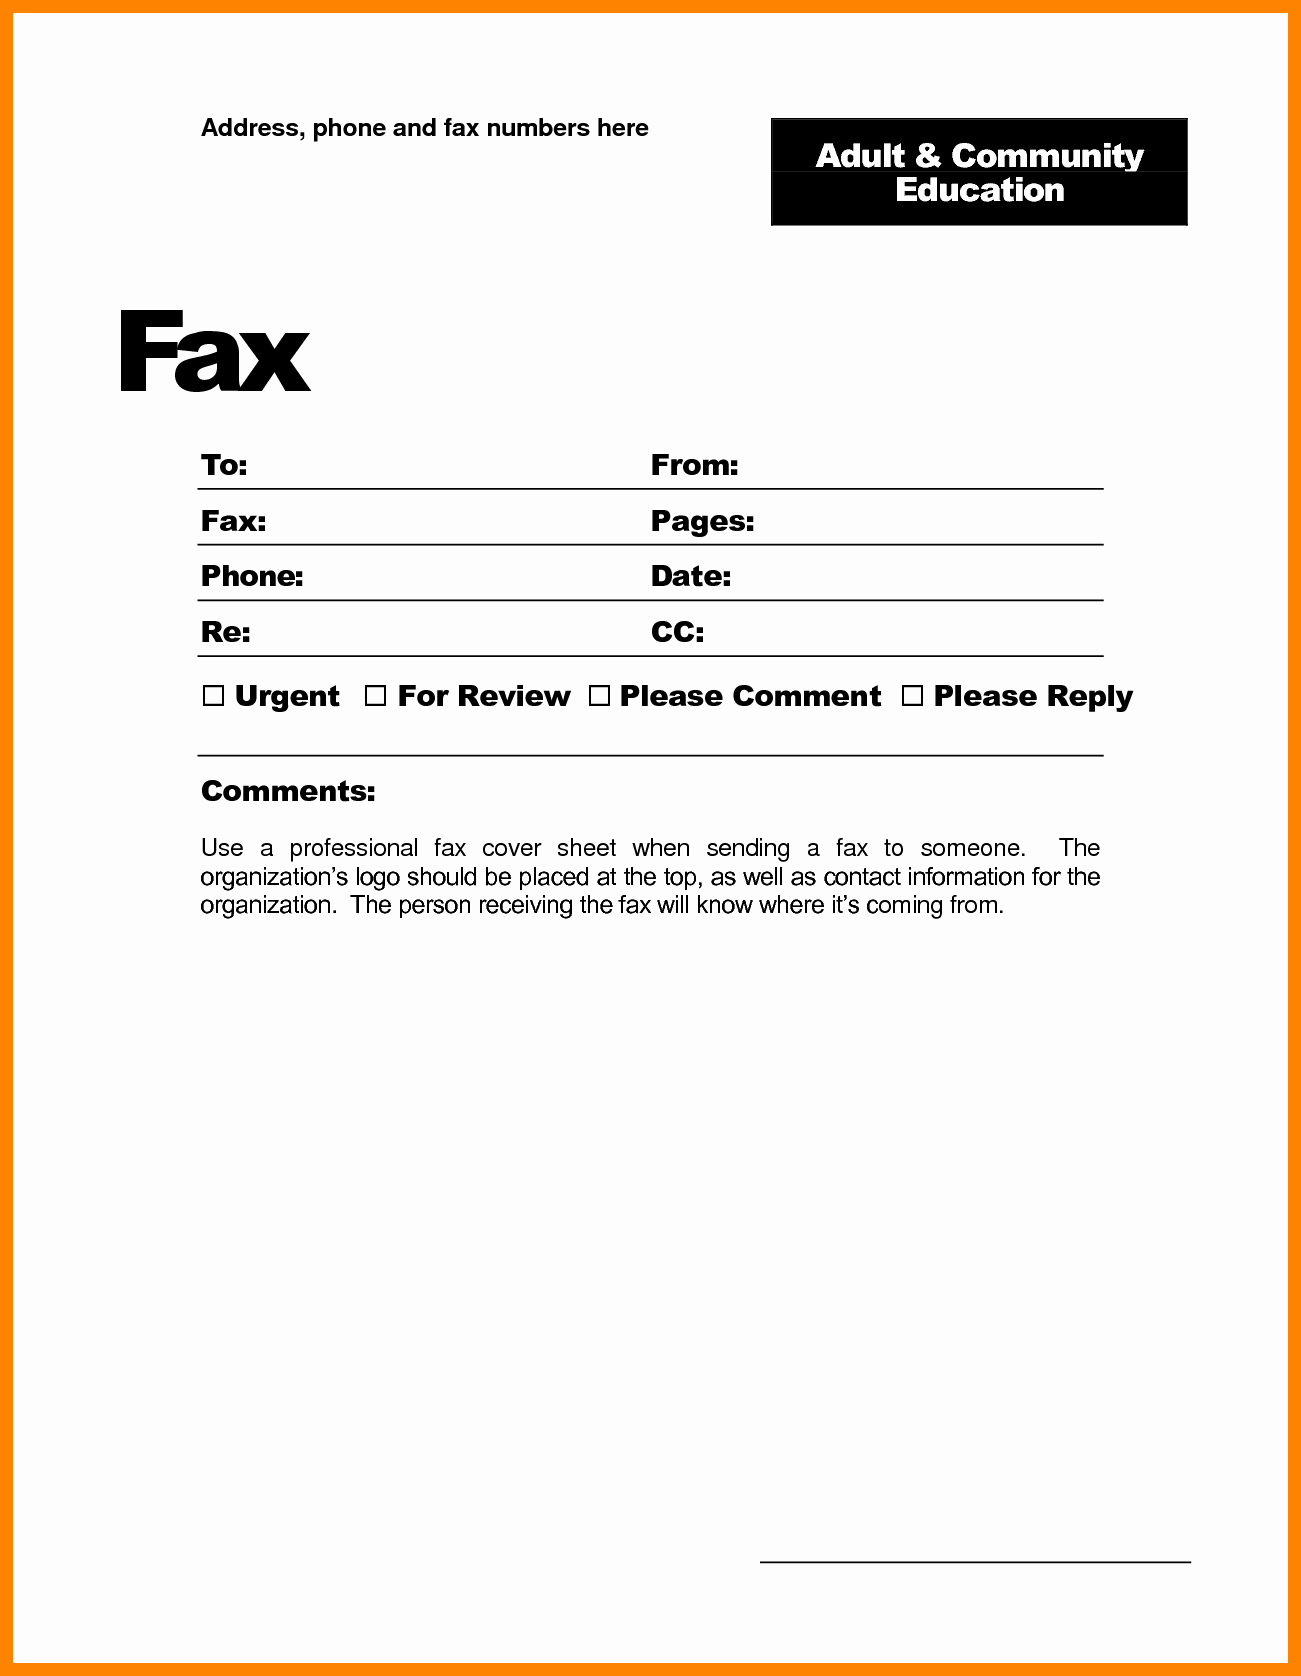 Sample Fax Cover Sheets Template Beautiful Fax Cover Template Word Portablegasgrillweber